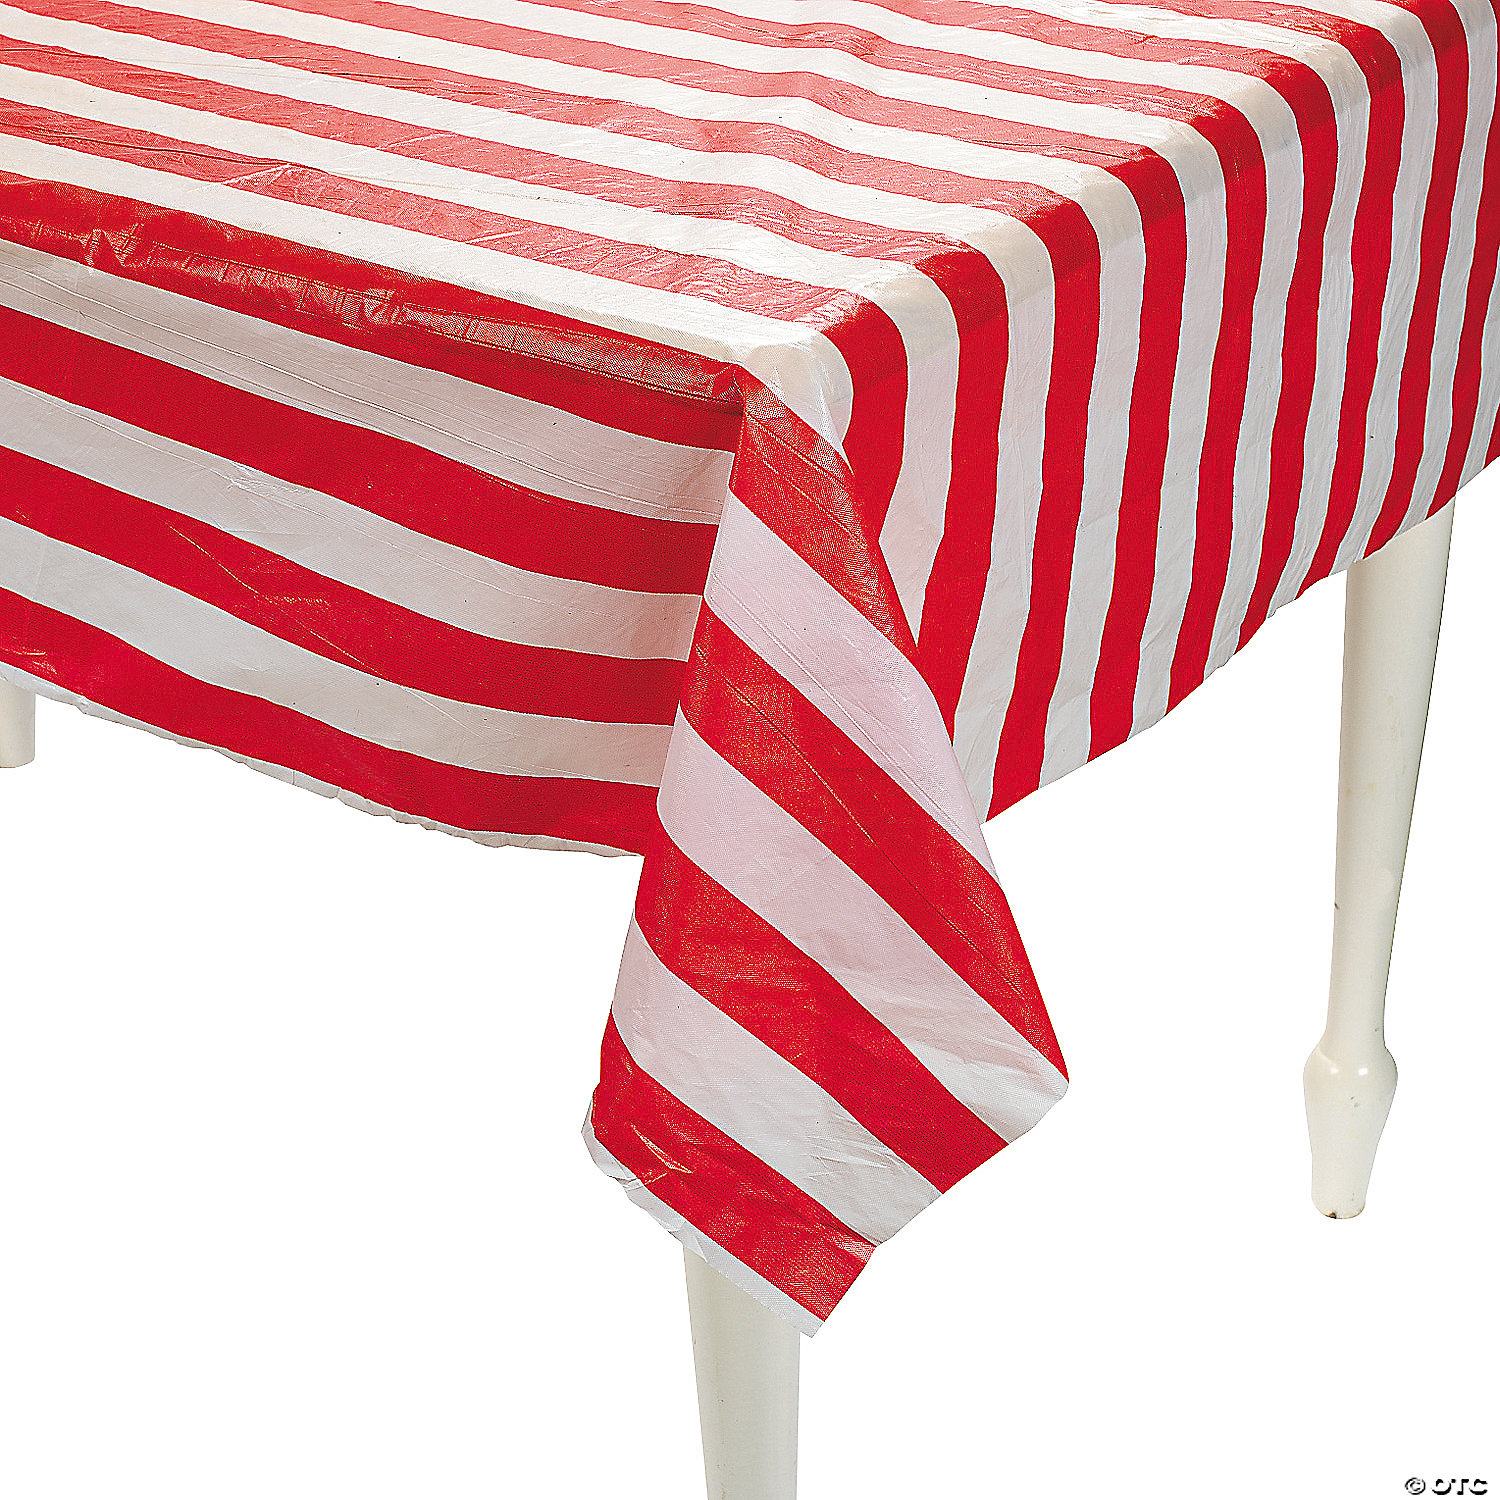 Charmant ... Red And White Striped Plastic Tablecloth Roll